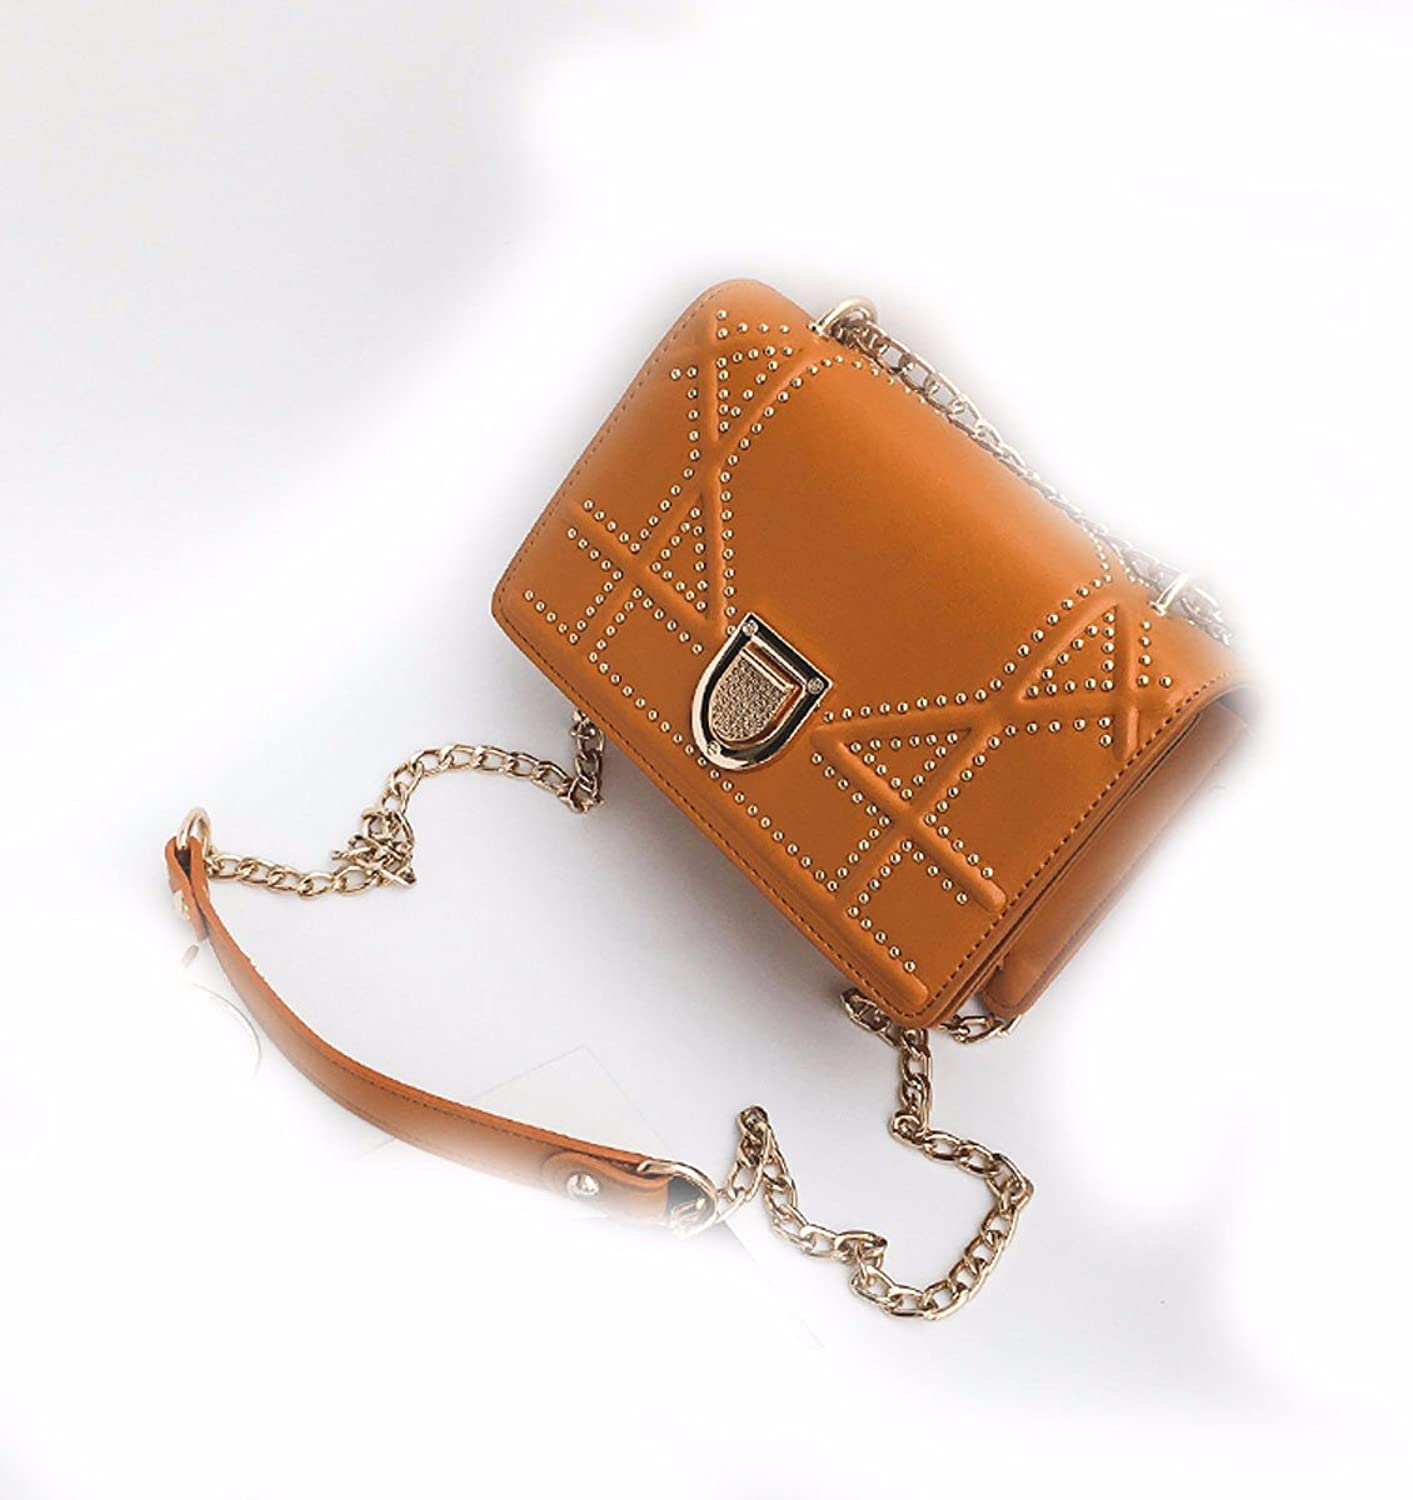 GTVERNHWomen Fashion Handbag AllMatch Women's Bag, Satchel Bag, Shoulder Bag, Handbag, Rivet Chain Bag, Small Square Bag.